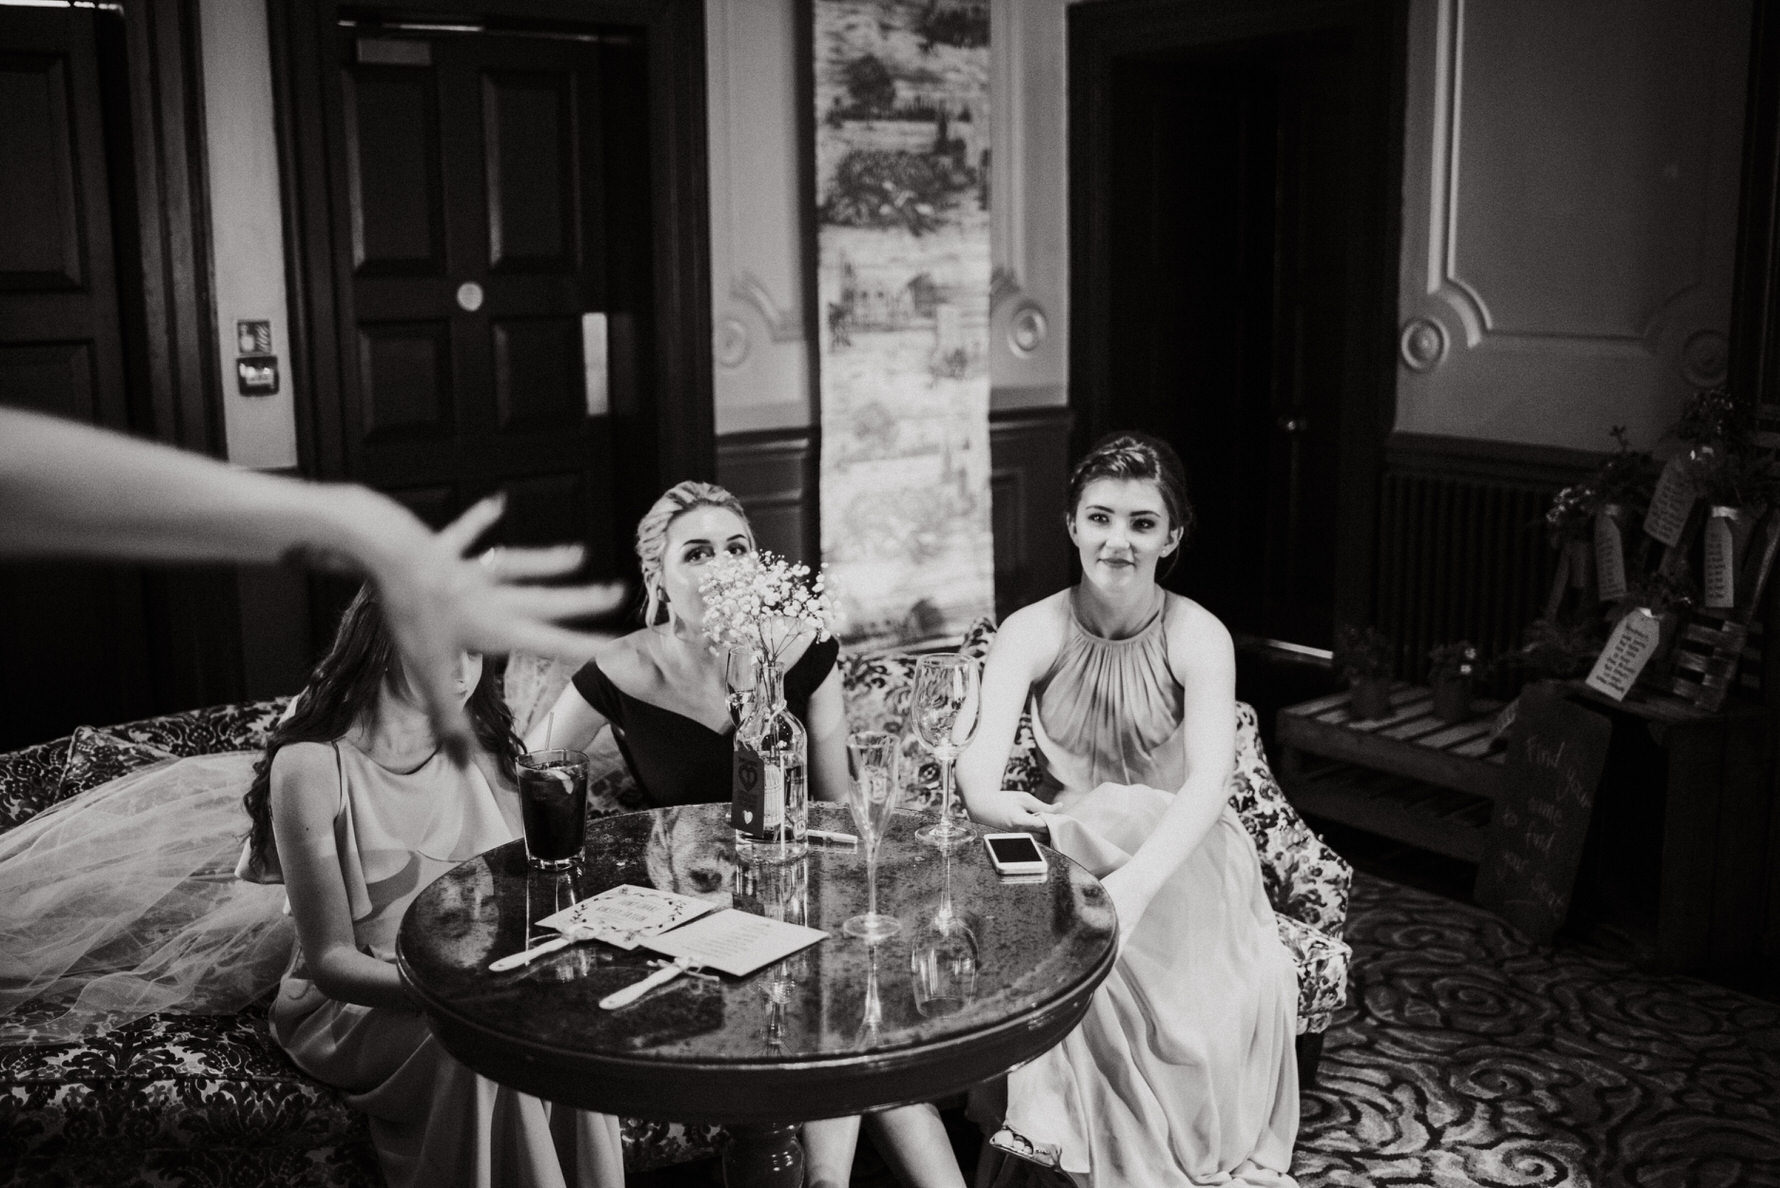 Cheshire Candid Unposed Documentary Wedding Photography at Oddfellows, Chester